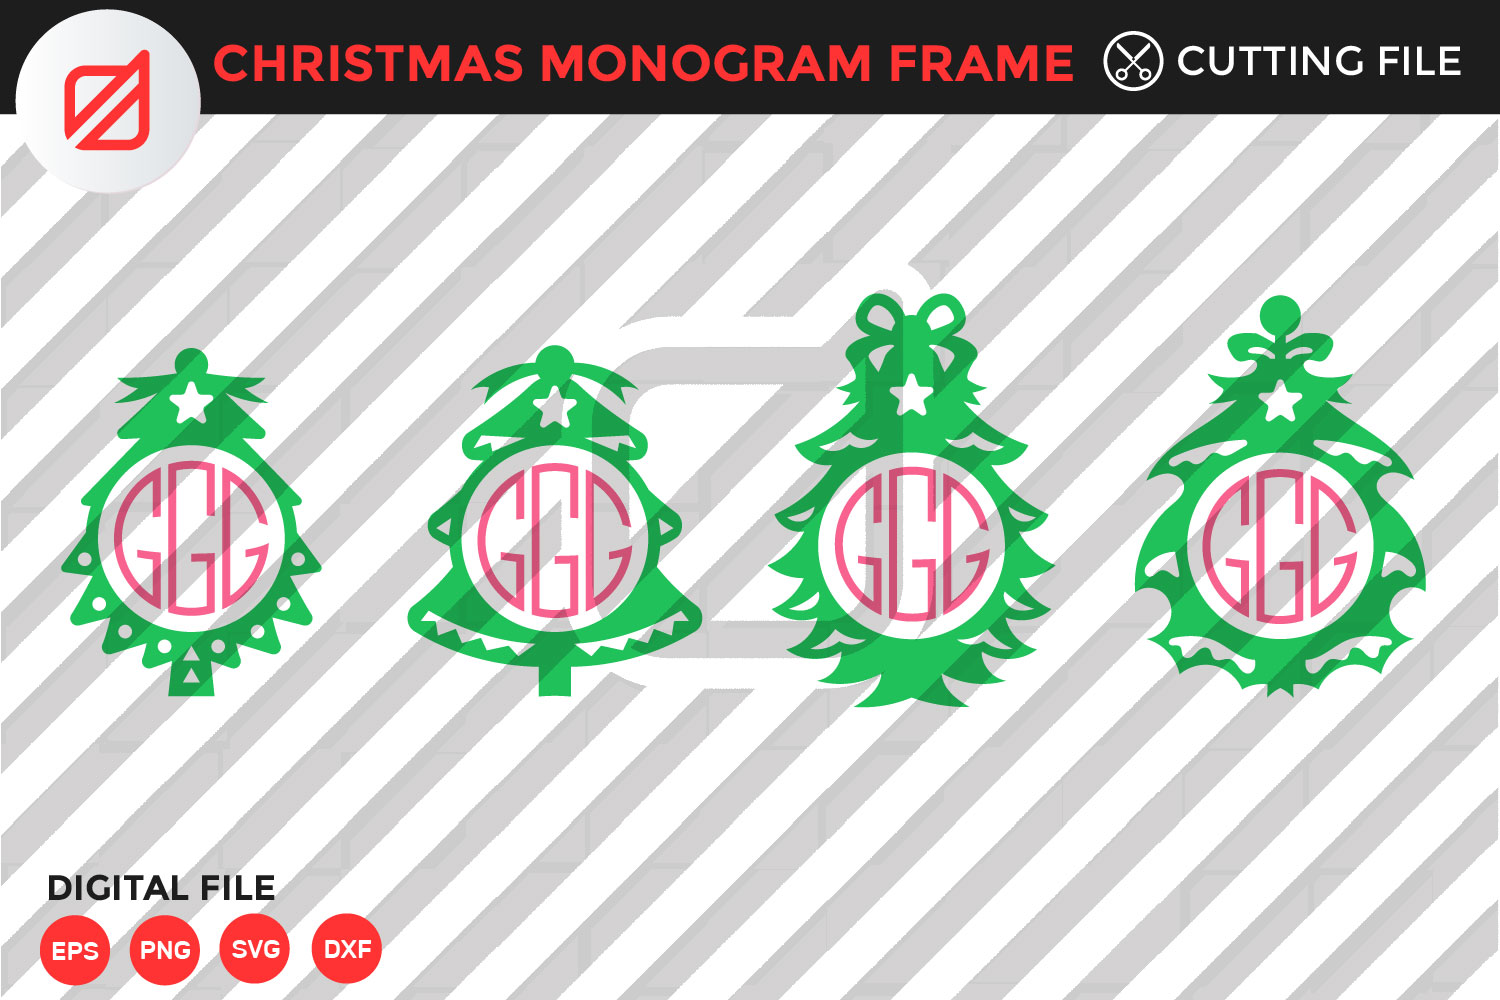 Christmas Monogram Frame Cutting File Graphic By Illusatrian